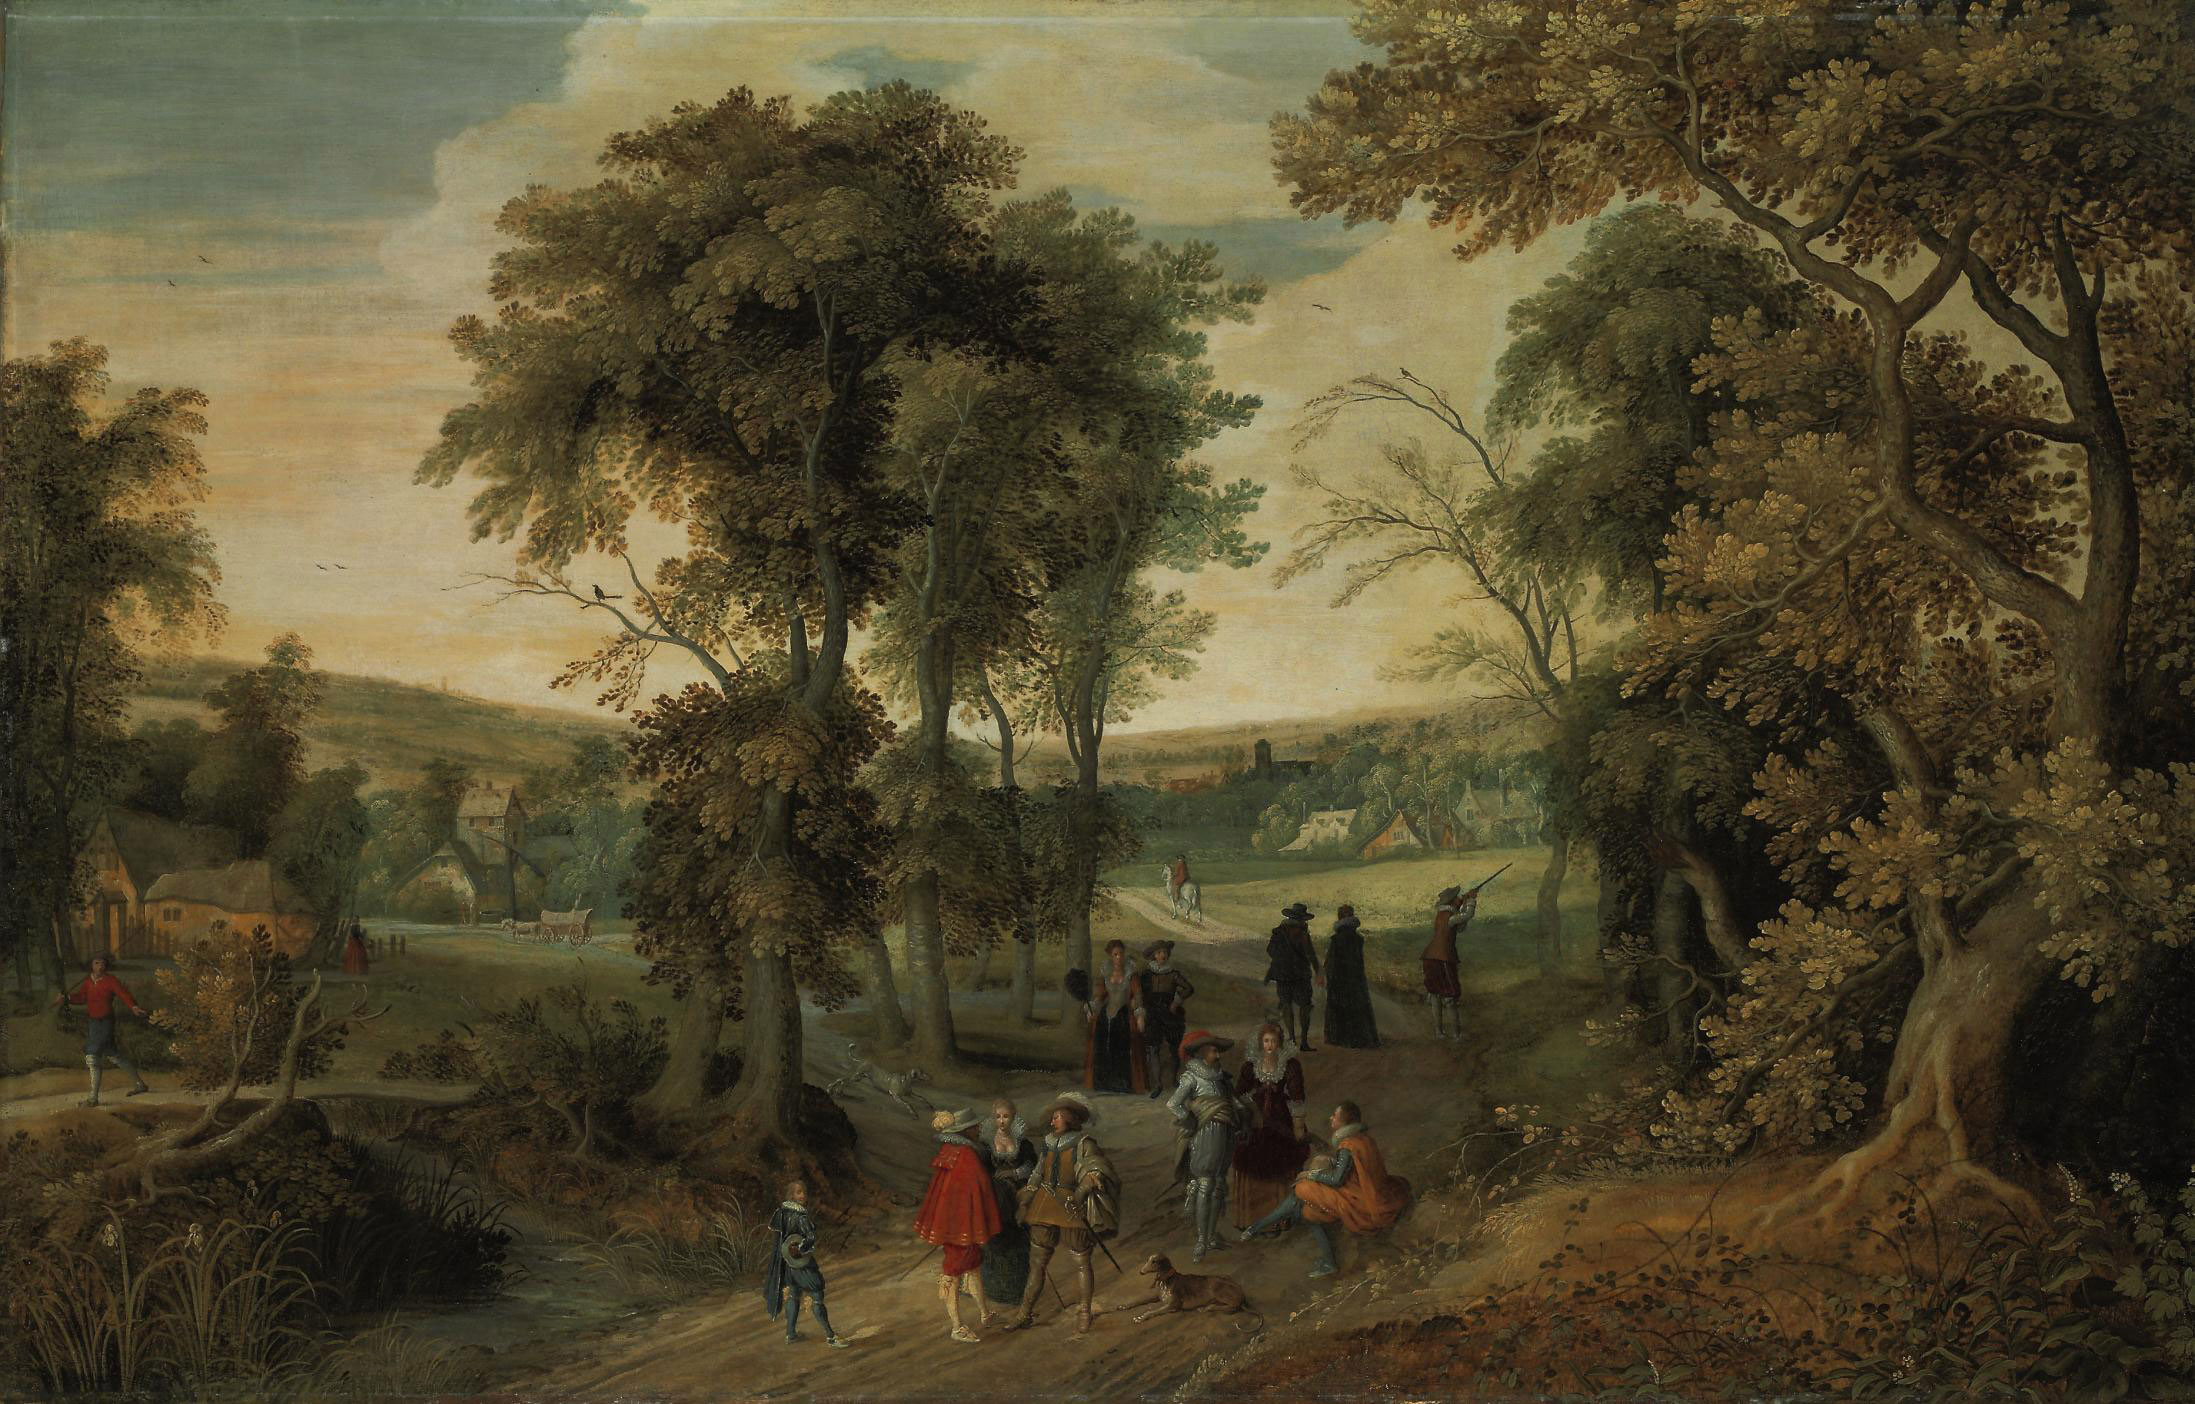 A wooded landscape with elegant figures riding, shooting and conversing, a village beyond